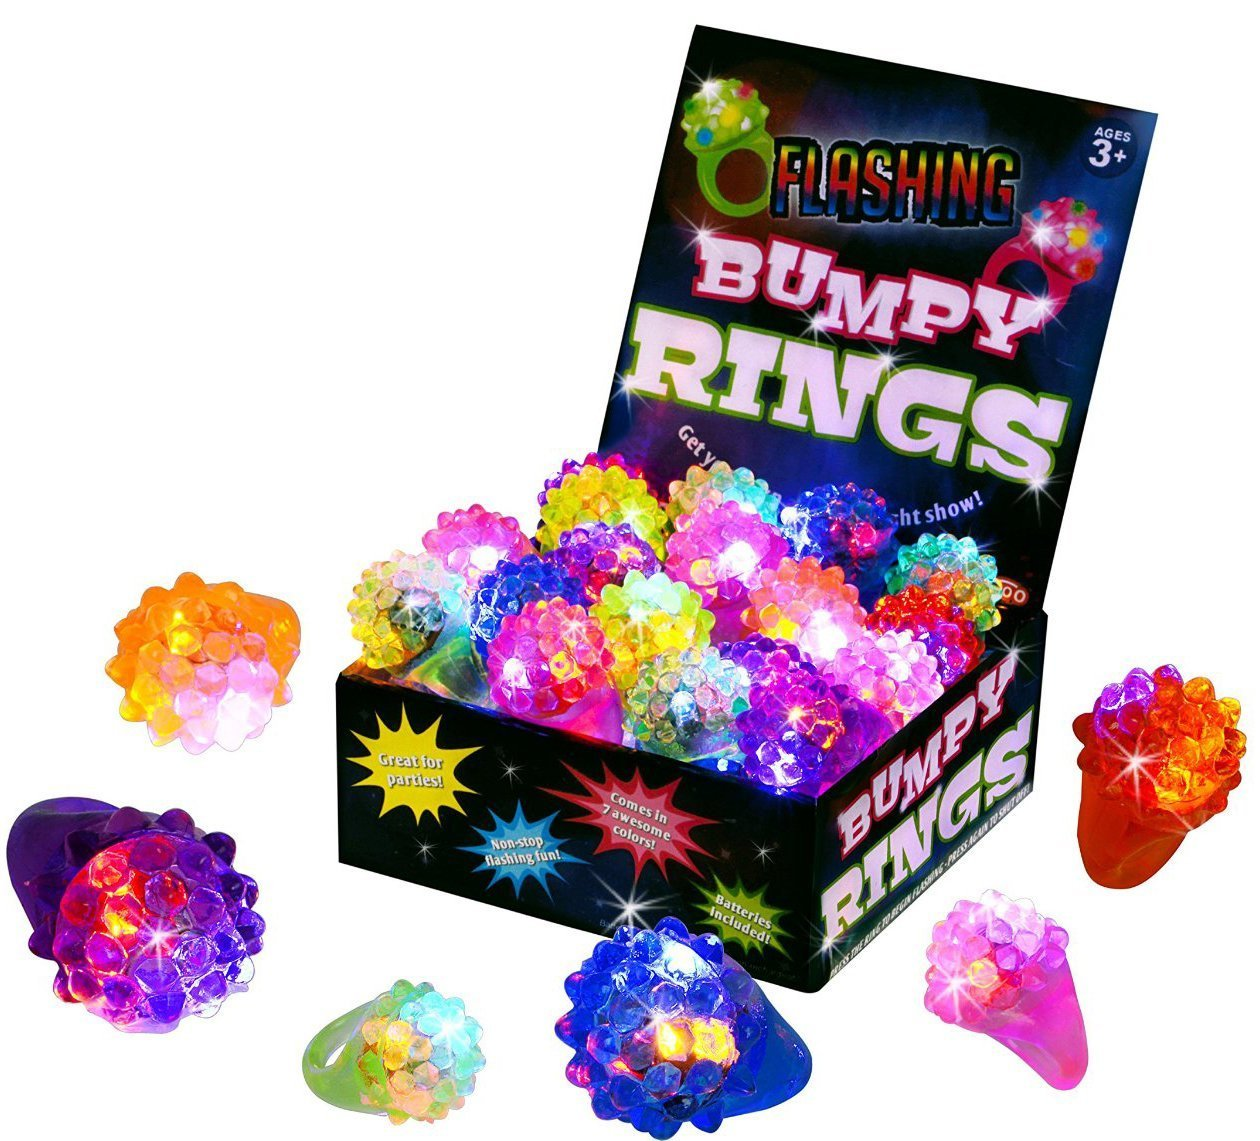 Kangaroos Flashing Led Light Up Toys Bumpy Rings 18 Dark Activated Or Lamp Flasher Circuit Pack Games